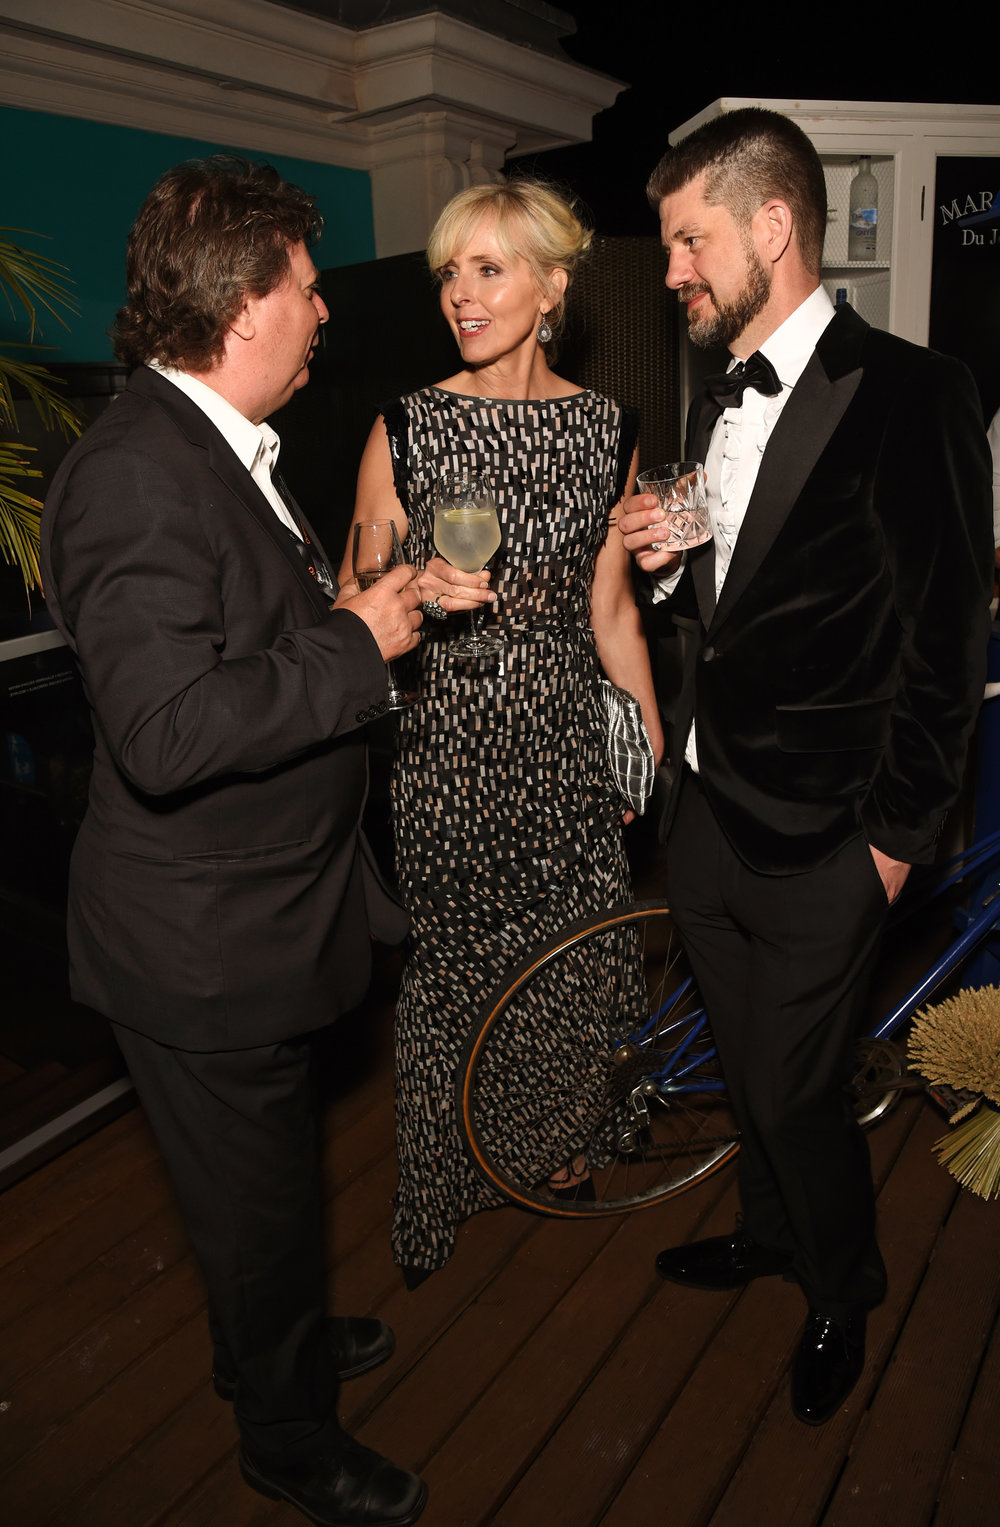 DMB-The Square Screening After-Party at Versini, Cannes, with GREY GOOSE58.JPG